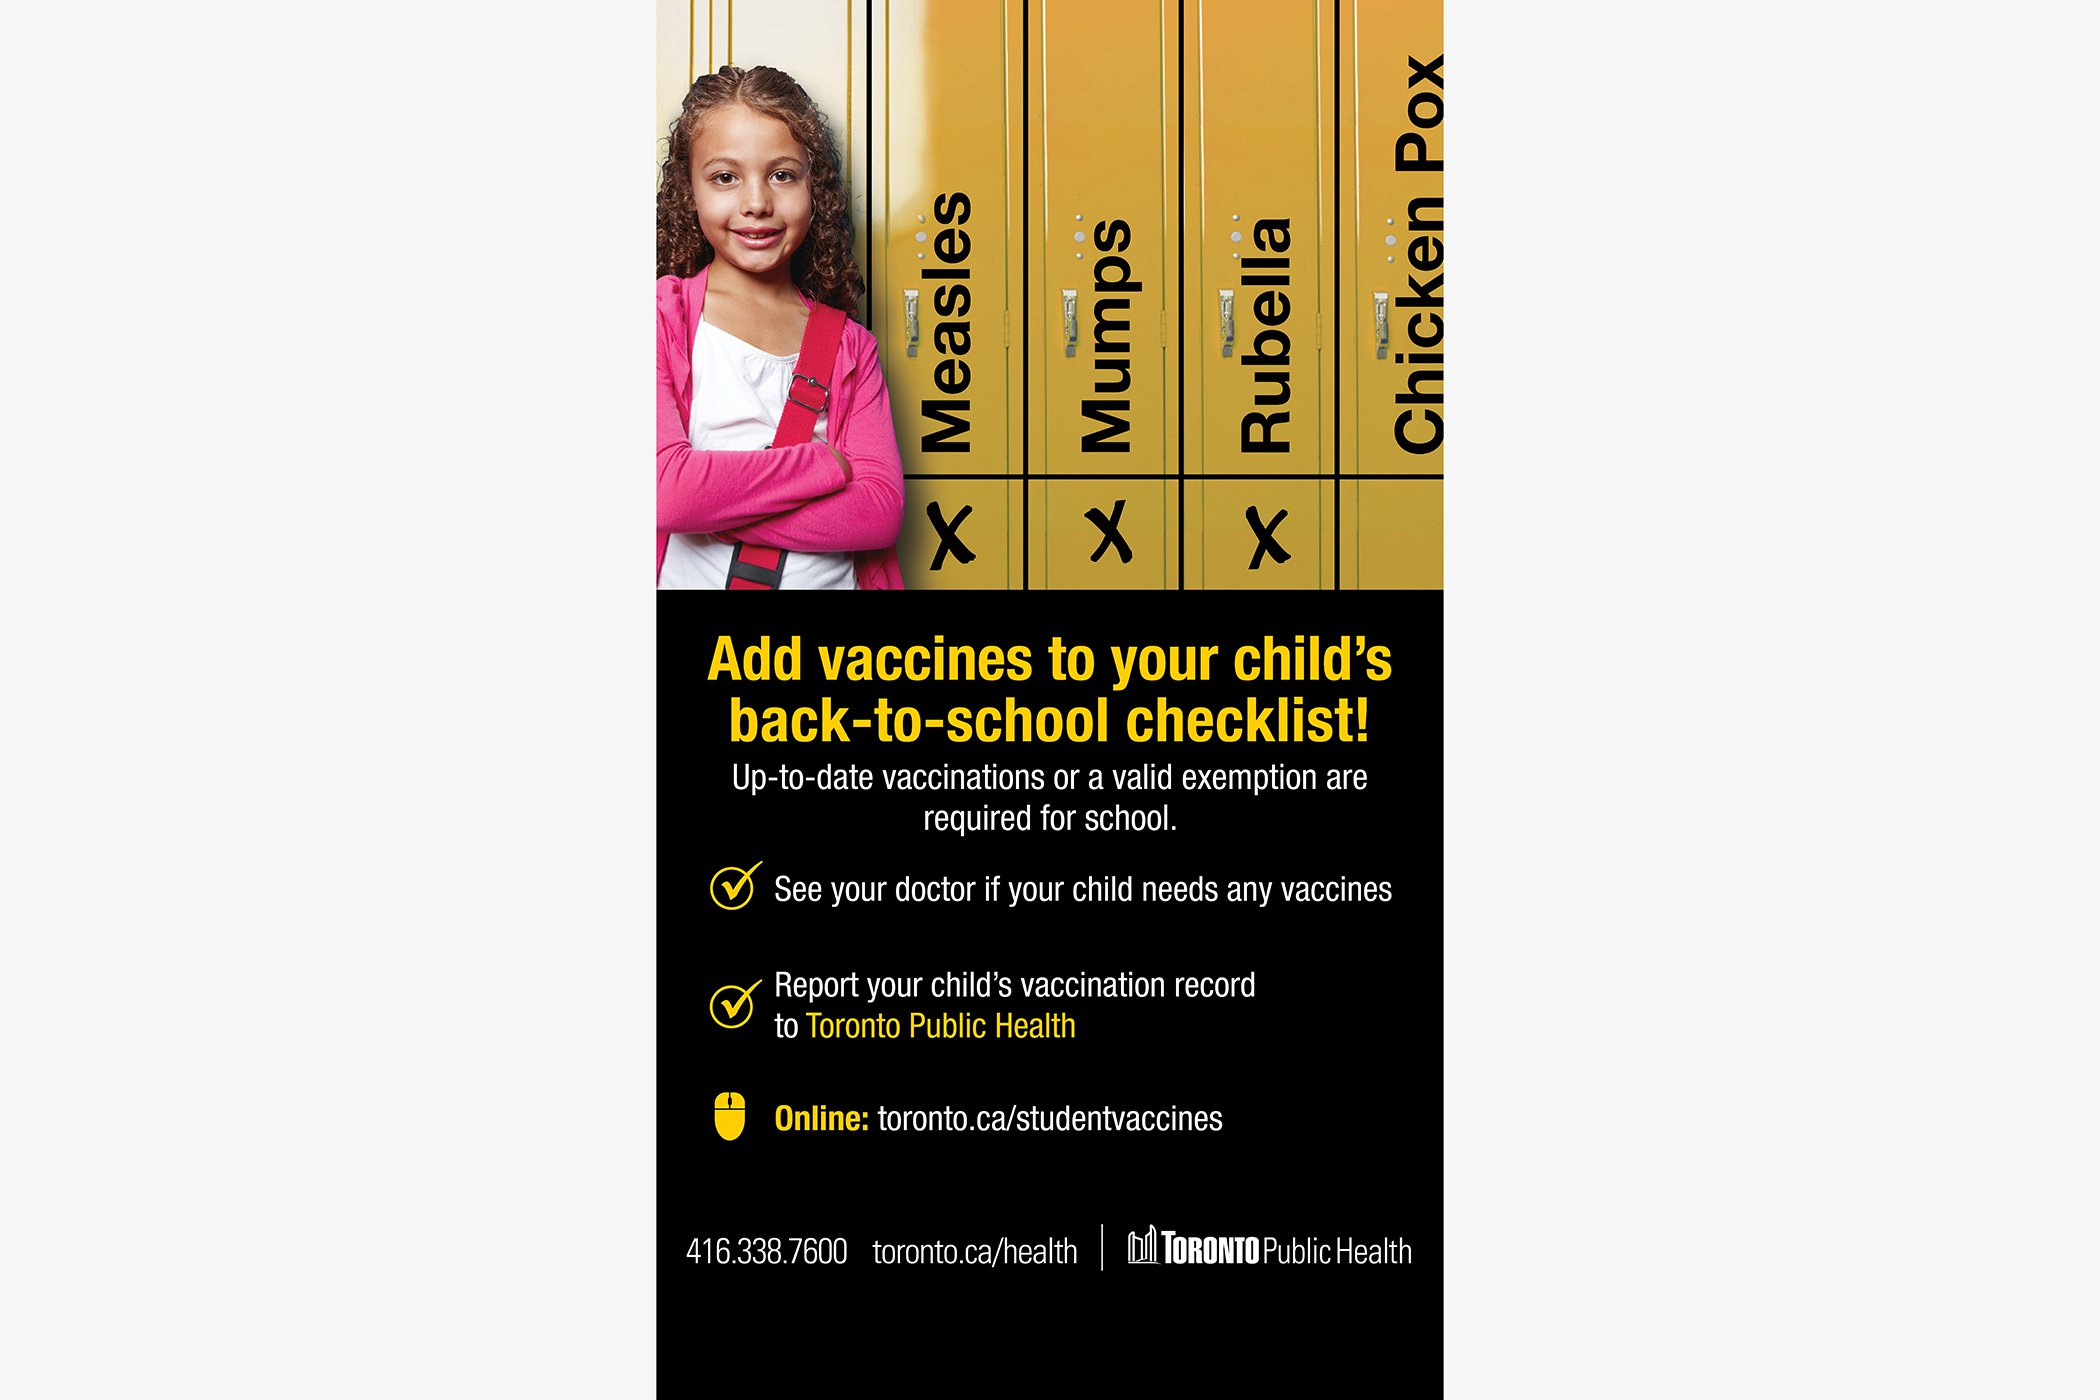 School Immunization TSA2 2160x3840 July2018 (002).png